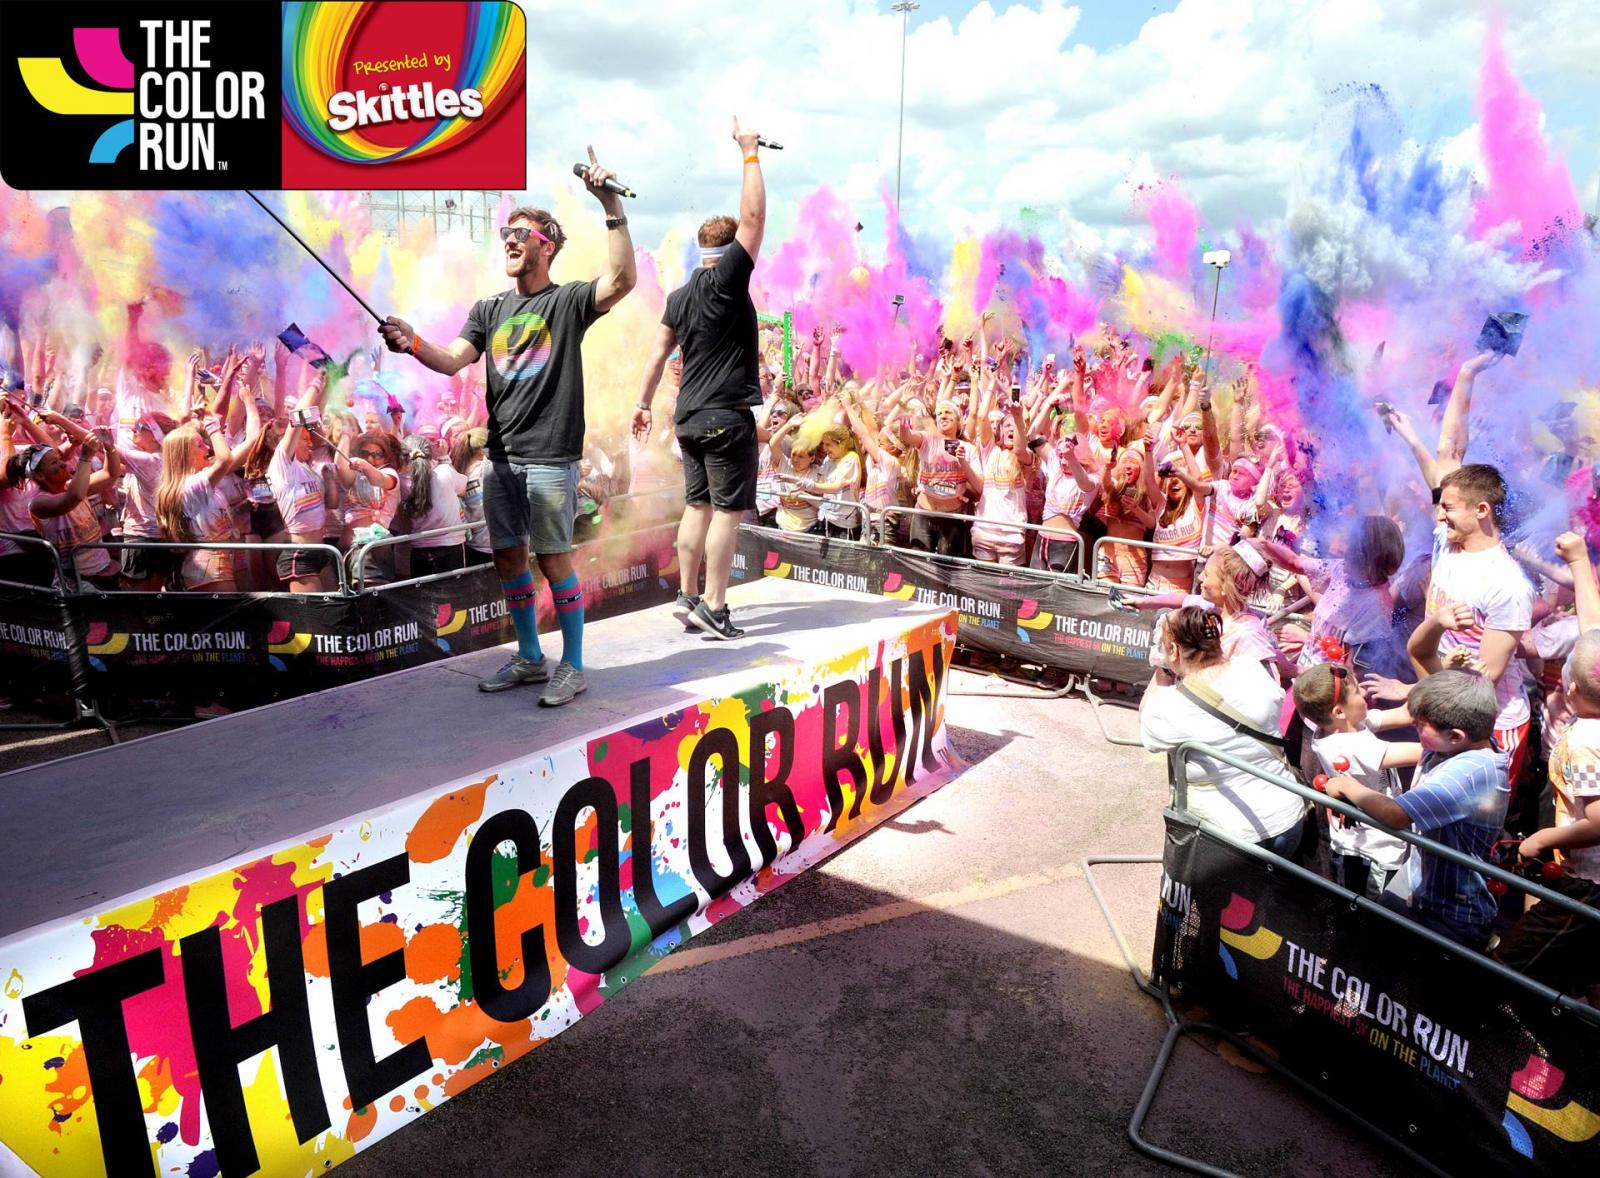 Win two pairs of tickets to the Brighton Color Run – Presented by Skittles!